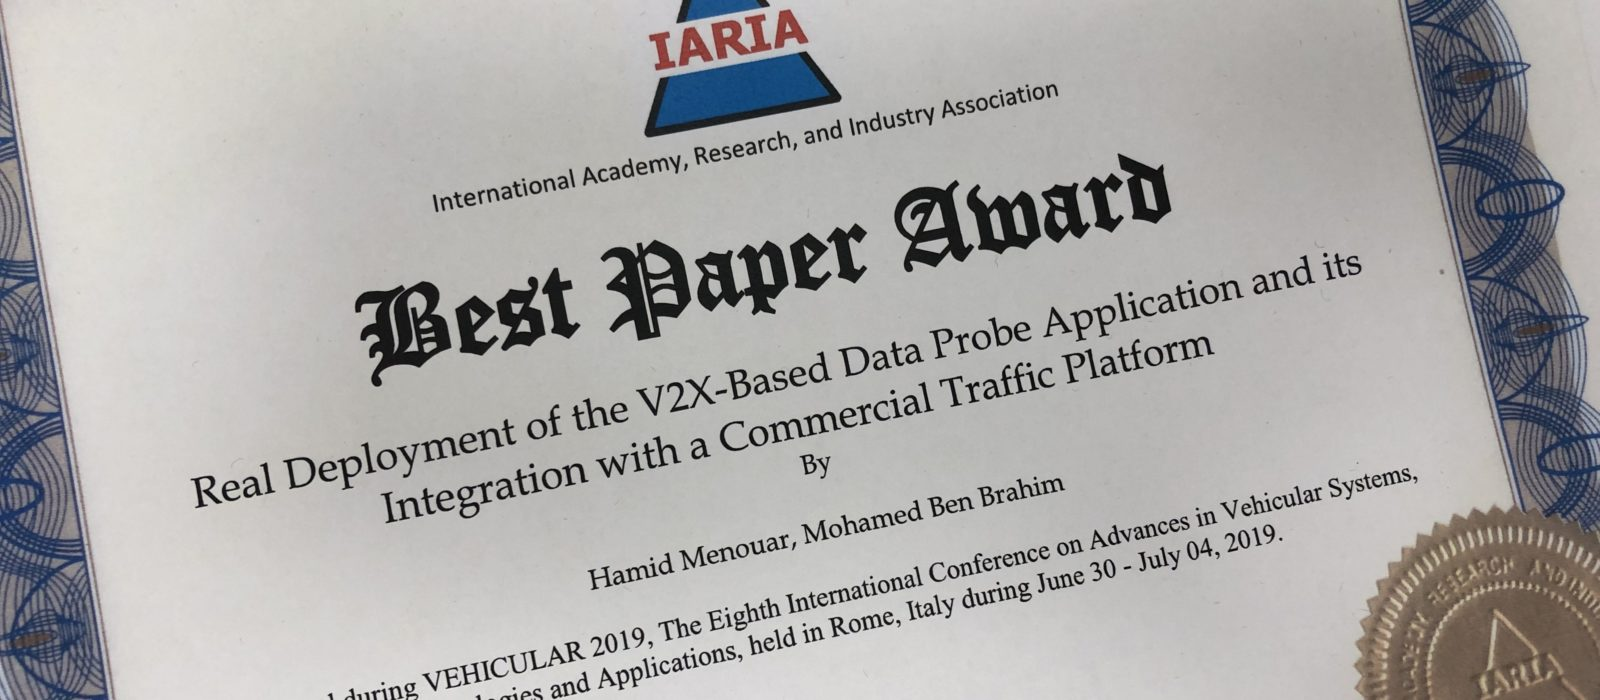 Received the best paper award at VEHICULAR'2019